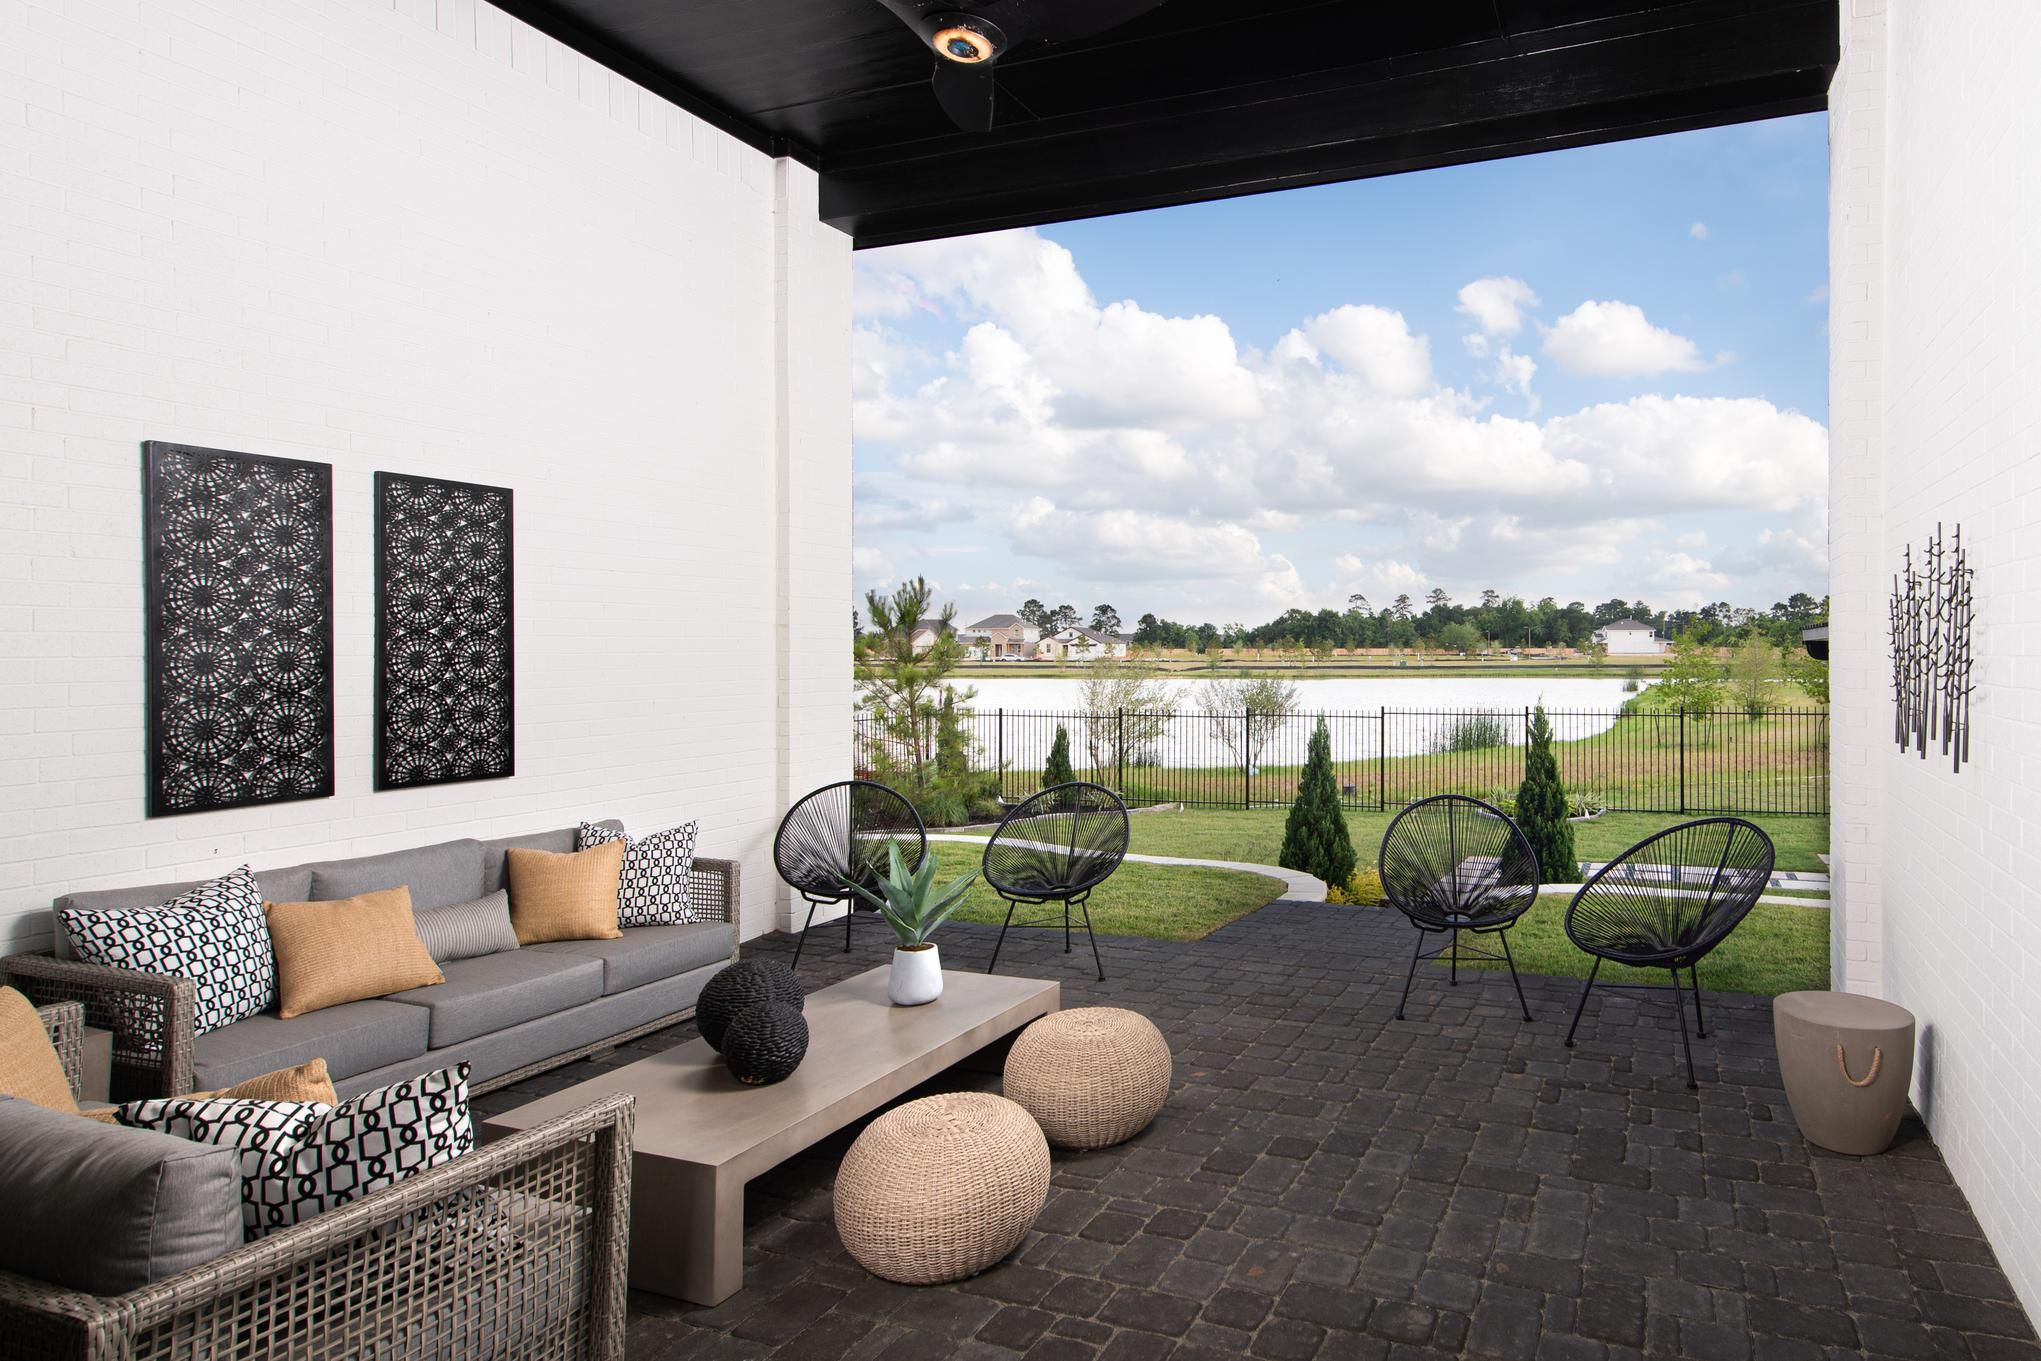 Outdoor Rooms Are Growing In Popularity And It S Easy To See Why With This Superb Space Pictured Above Venetia Grove Langdon M Luxury Homes Design Your Own Home Home